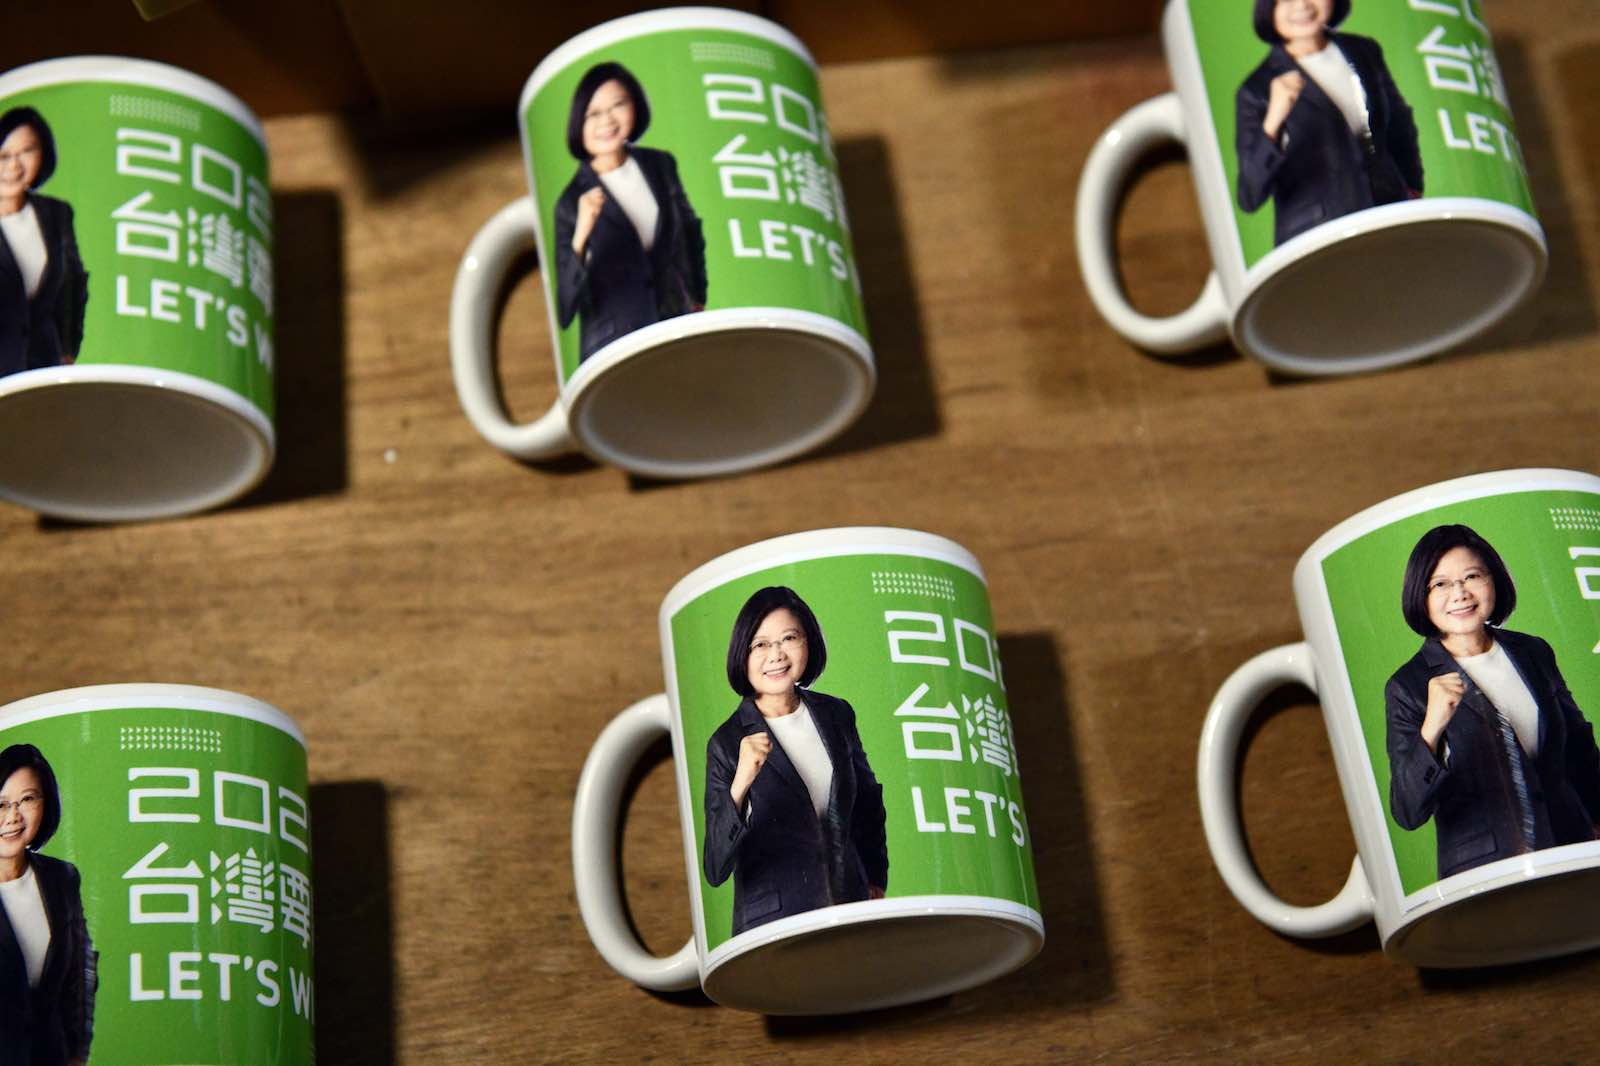 Tsai Ing-Wen–branded mugs are displayed for sale after her re-election as President of Taiwan, Taipei, 11 January (Photo: Carl Court/Getty Images)